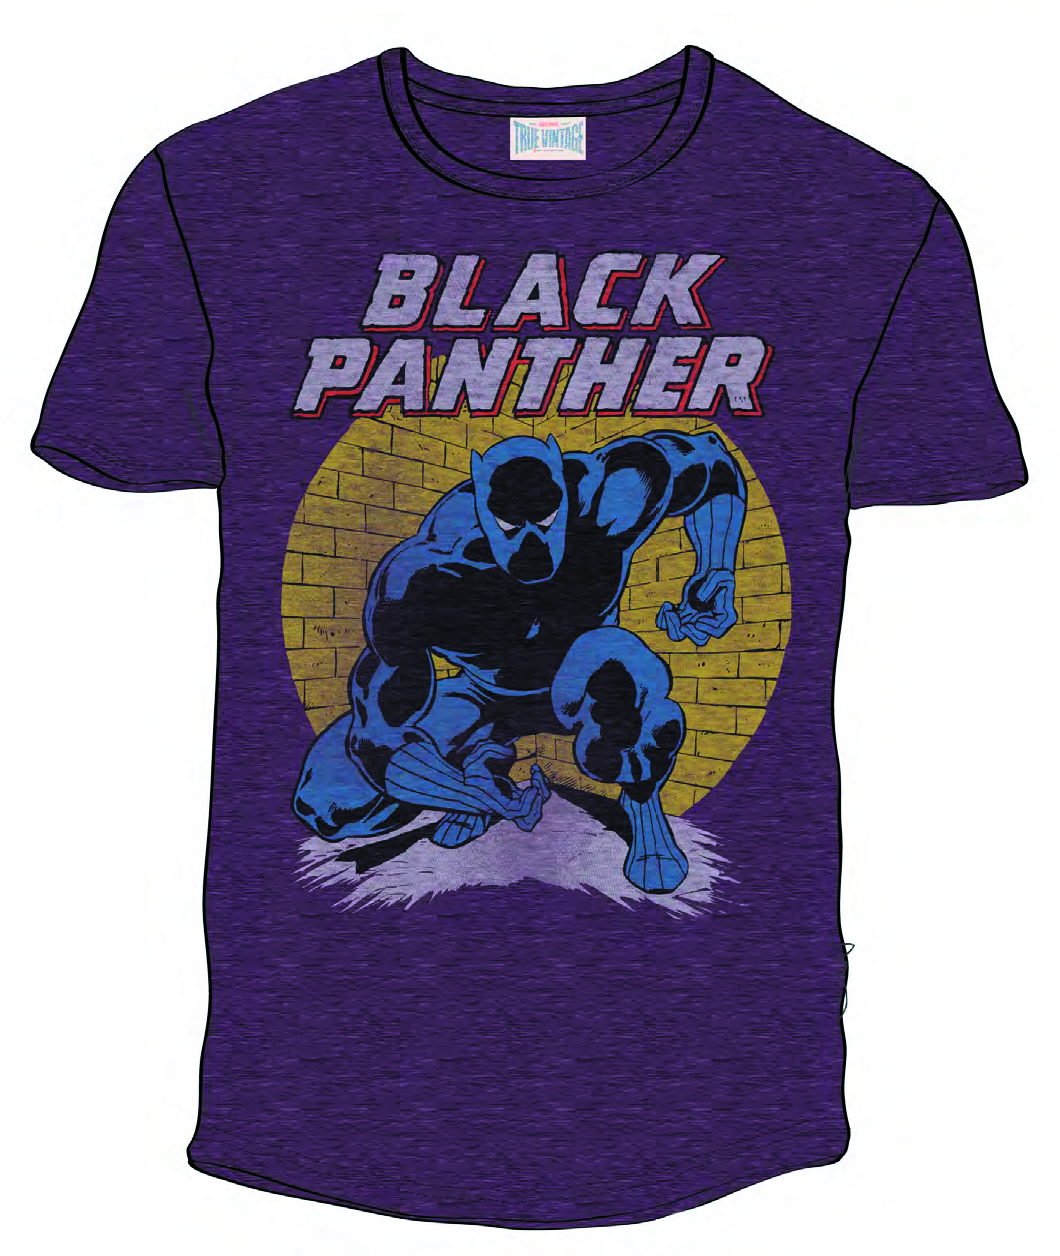 BLACK PANTHER PX BLACKBERRY HEATHER T/S SM